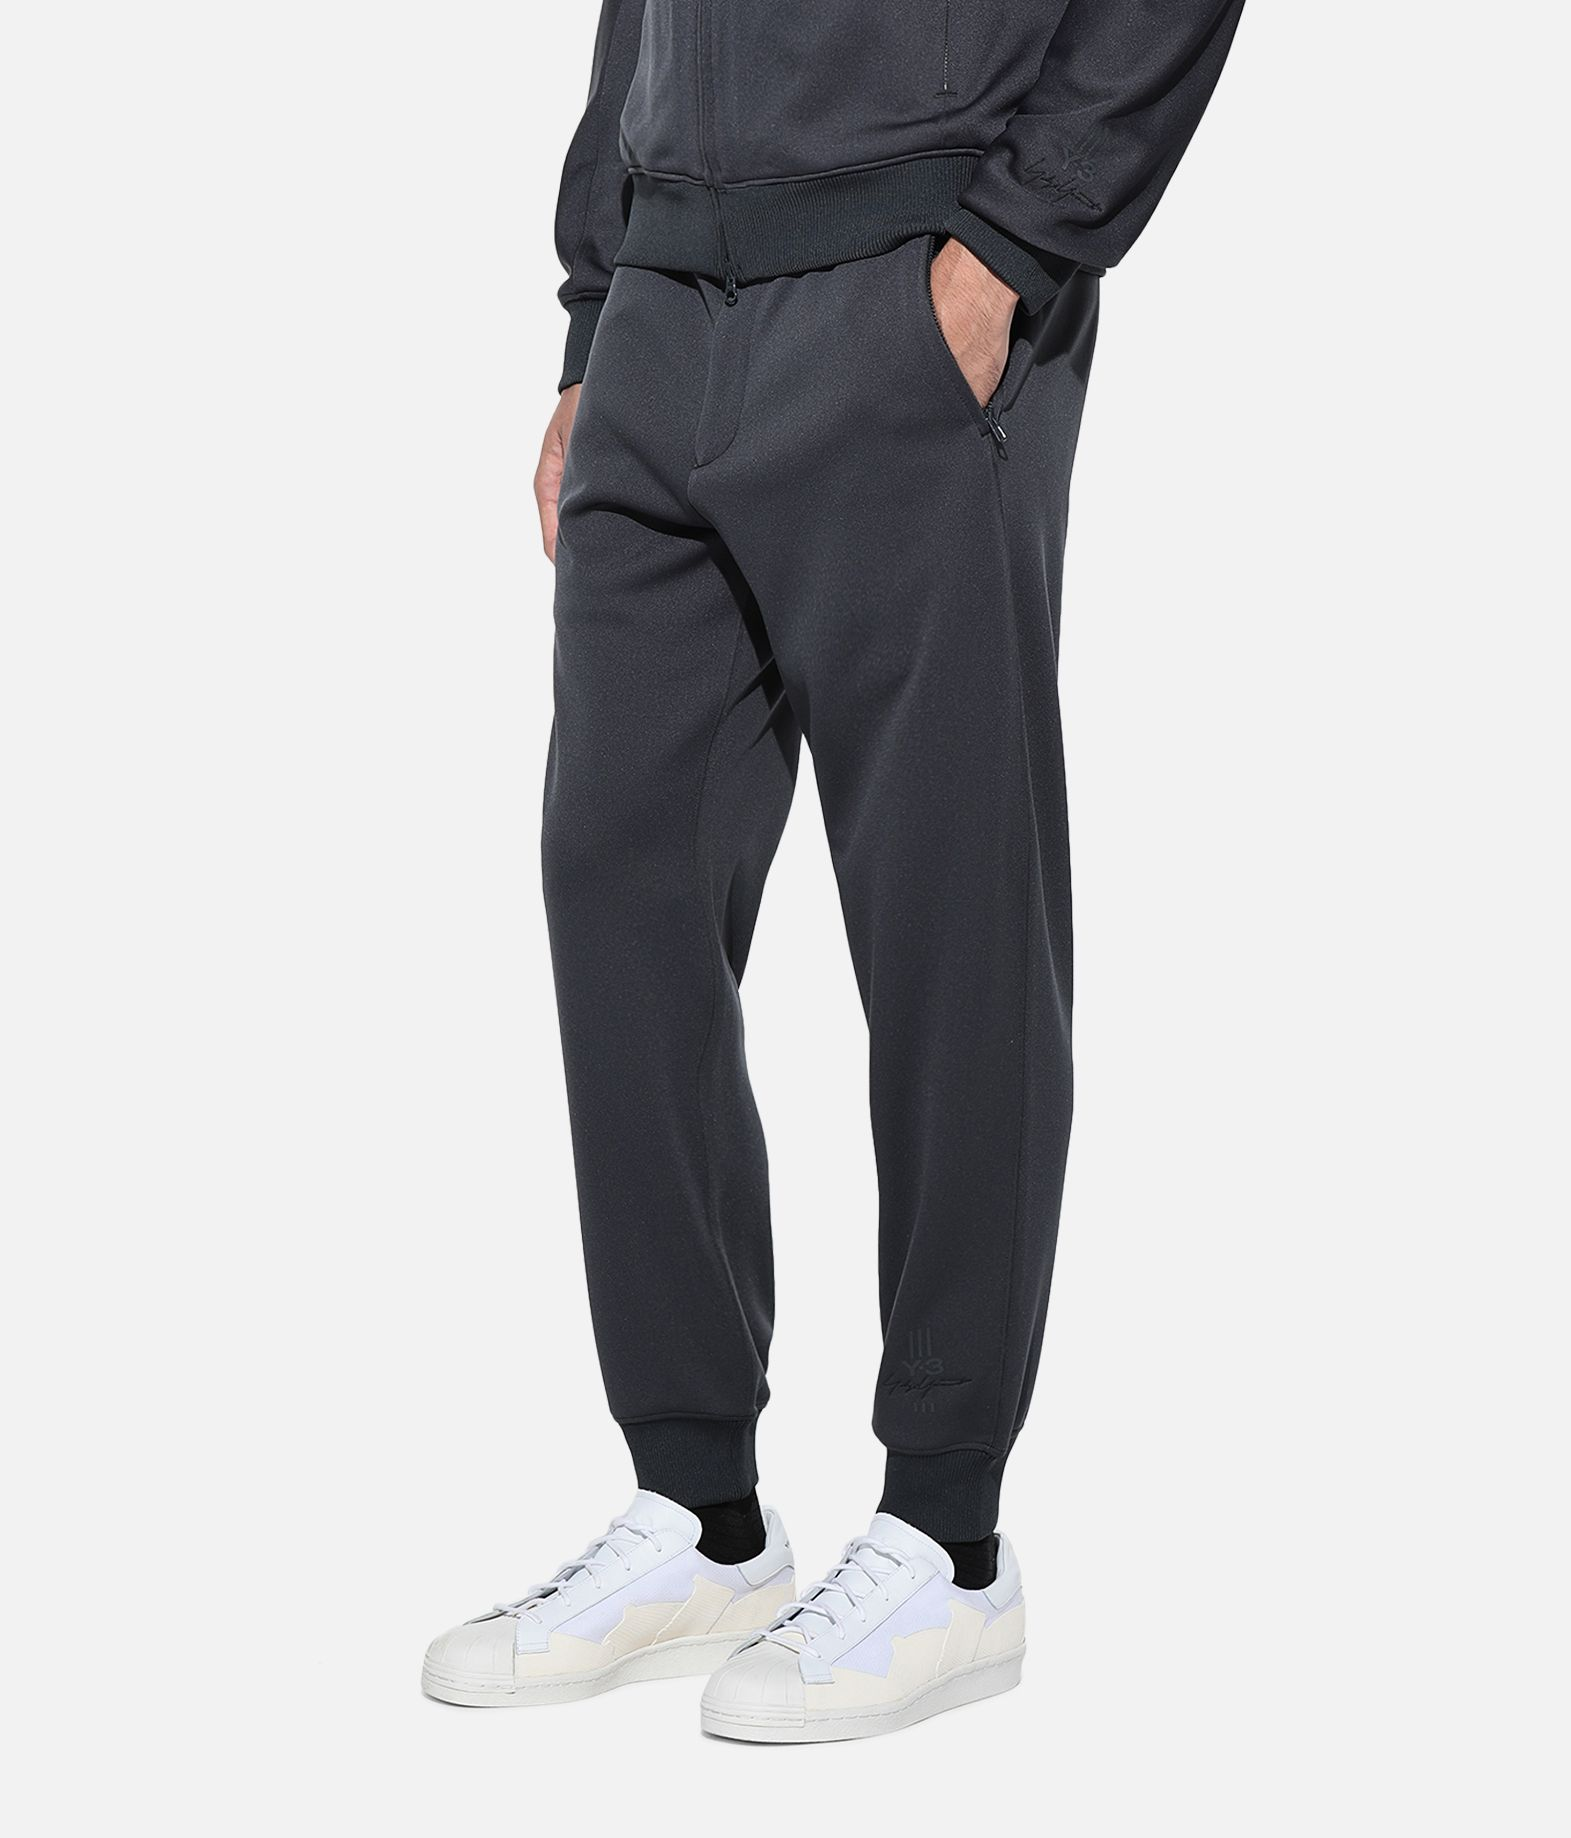 Y-3 Y-3 New Classic Track Pants Tracksuit bottoms Man e